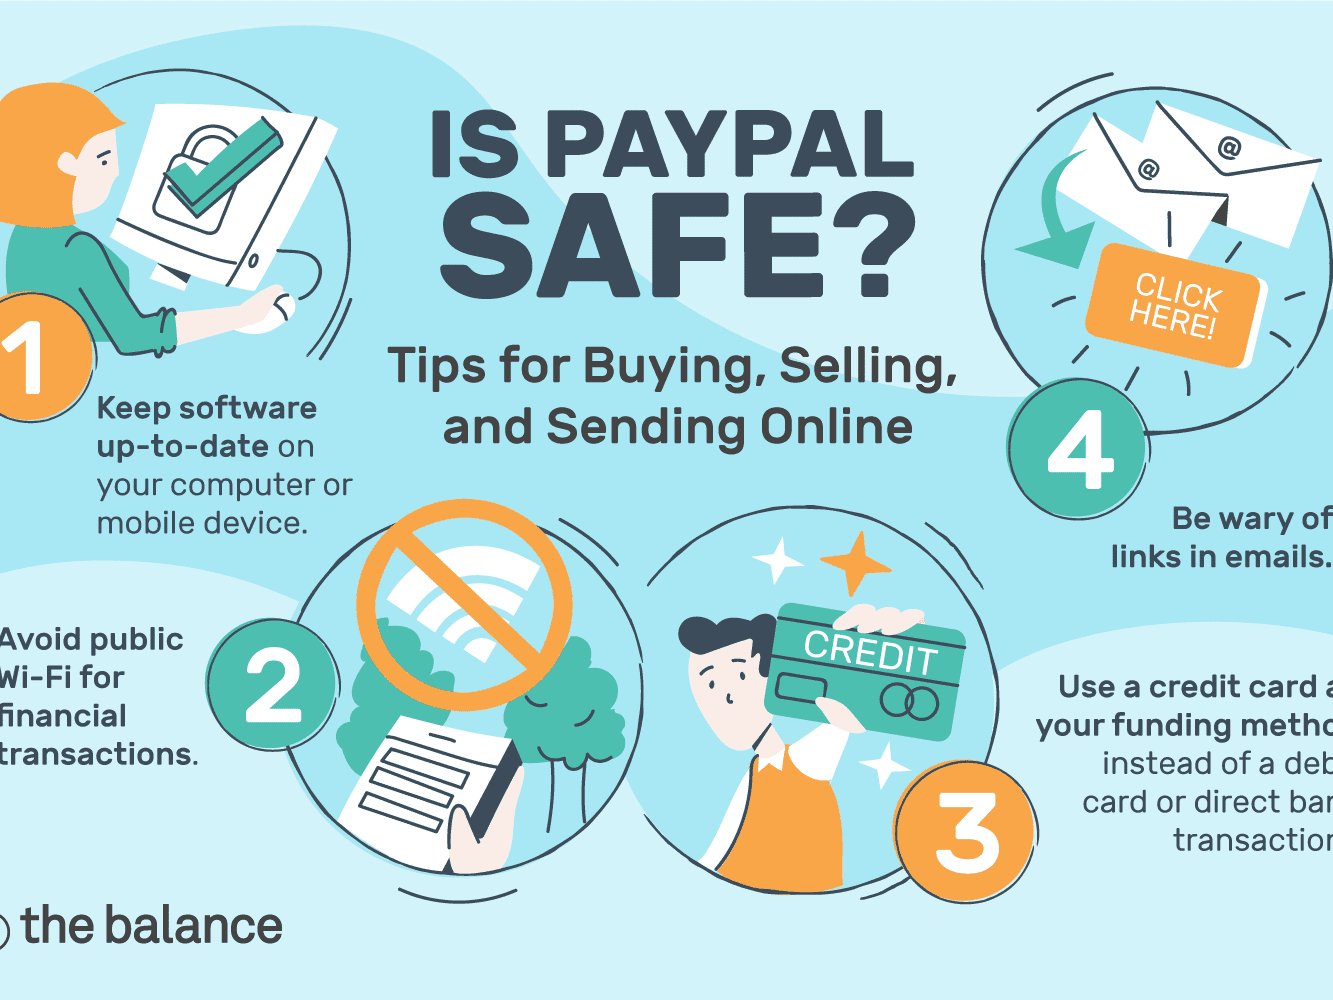 Is PayPal Safe? Tips for Buying, Selling, and Sending Online